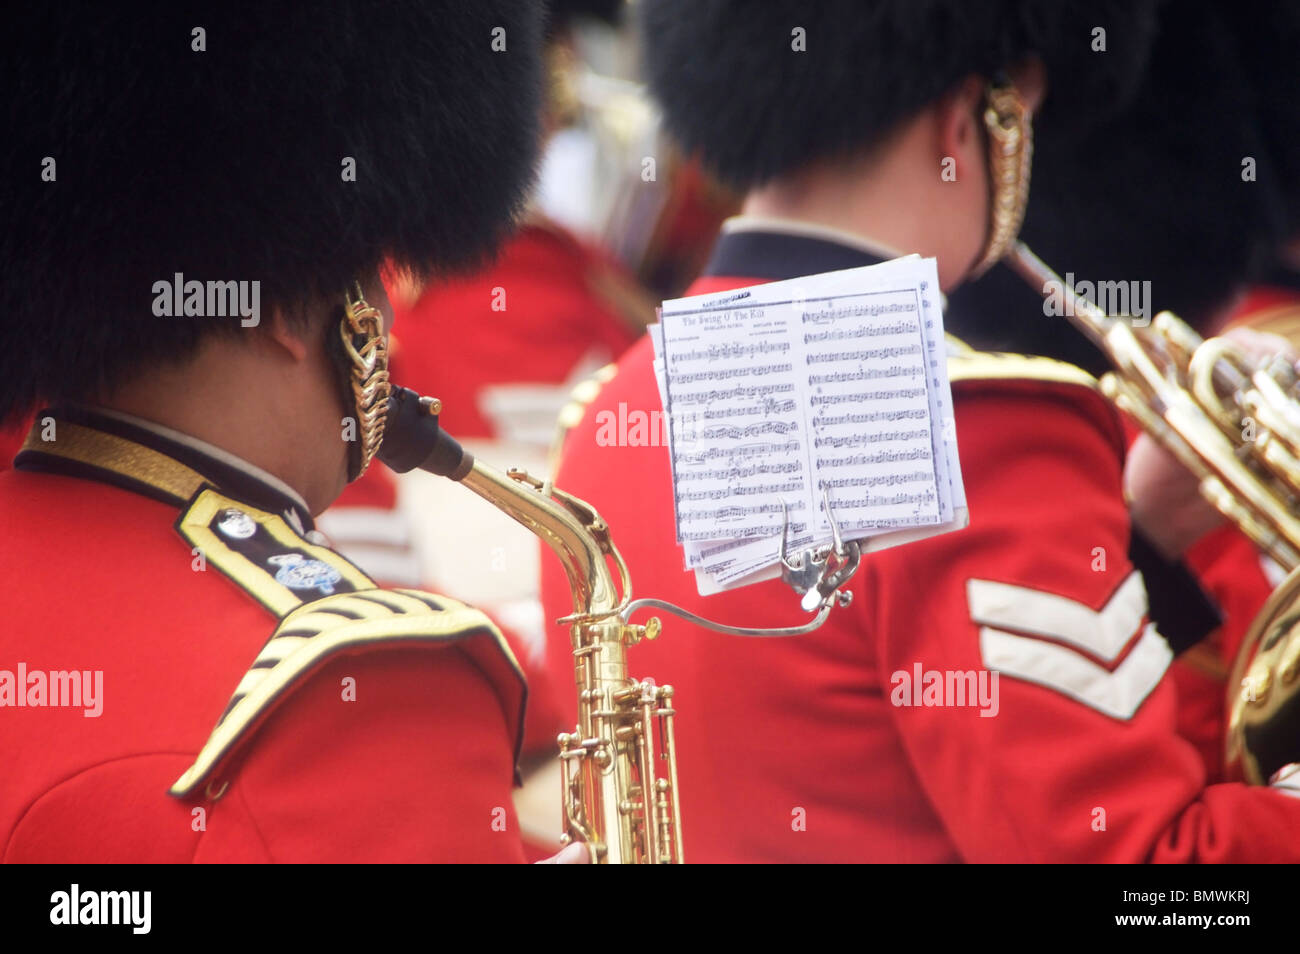 Trooping The Colour 2010 Close-up of band member playing music in courtyard of Buckingham Palace London England - Stock Image